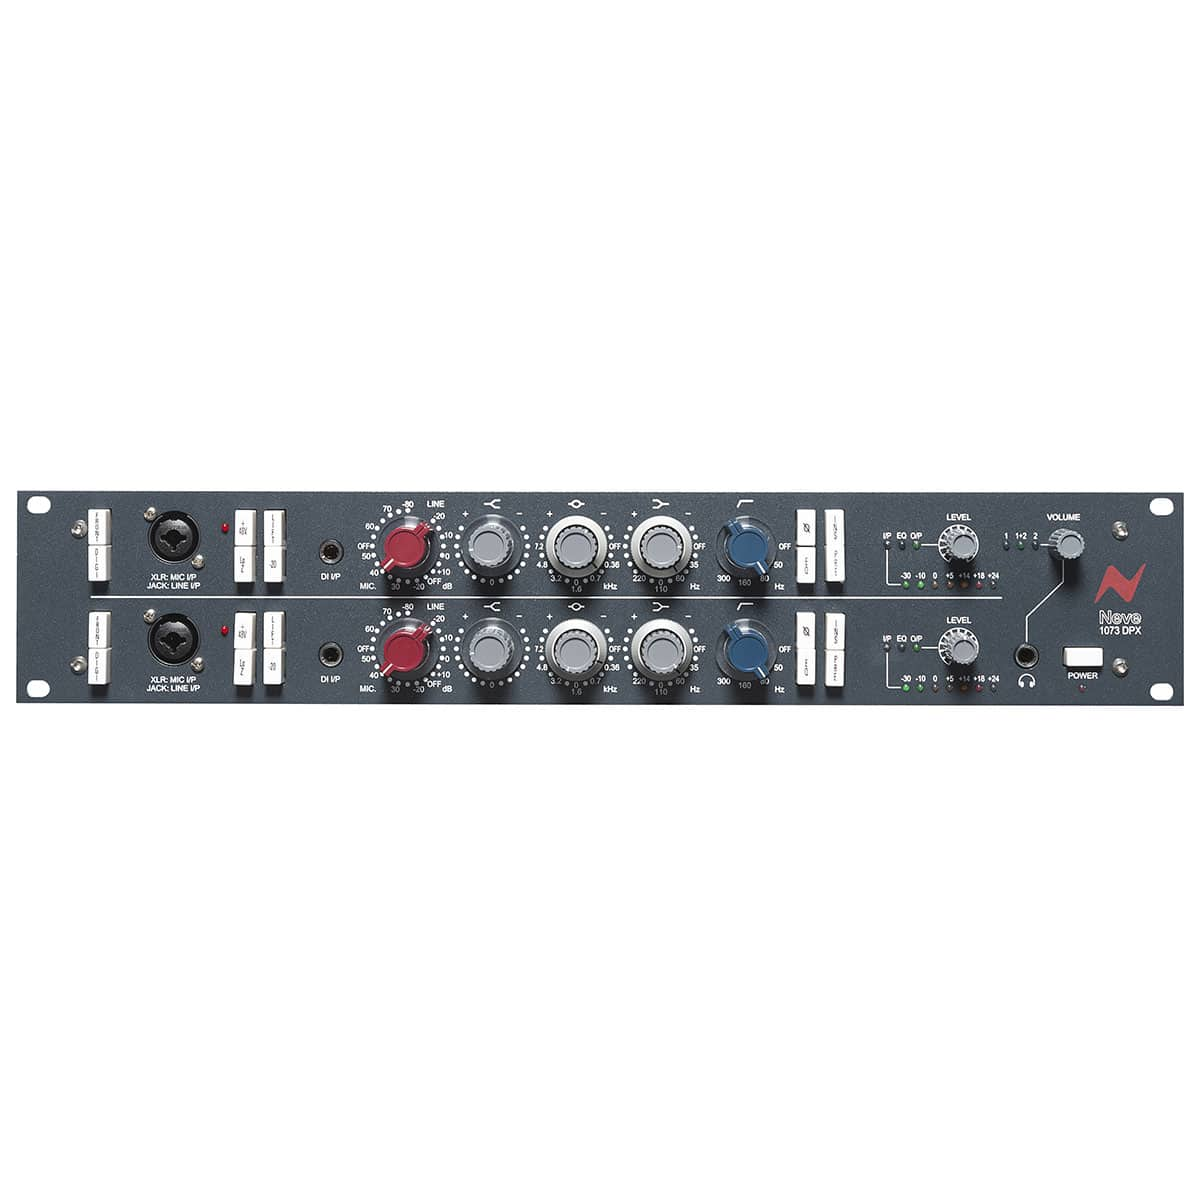 Ams Neve 1073 DPX 01 Neve 1073 DPX